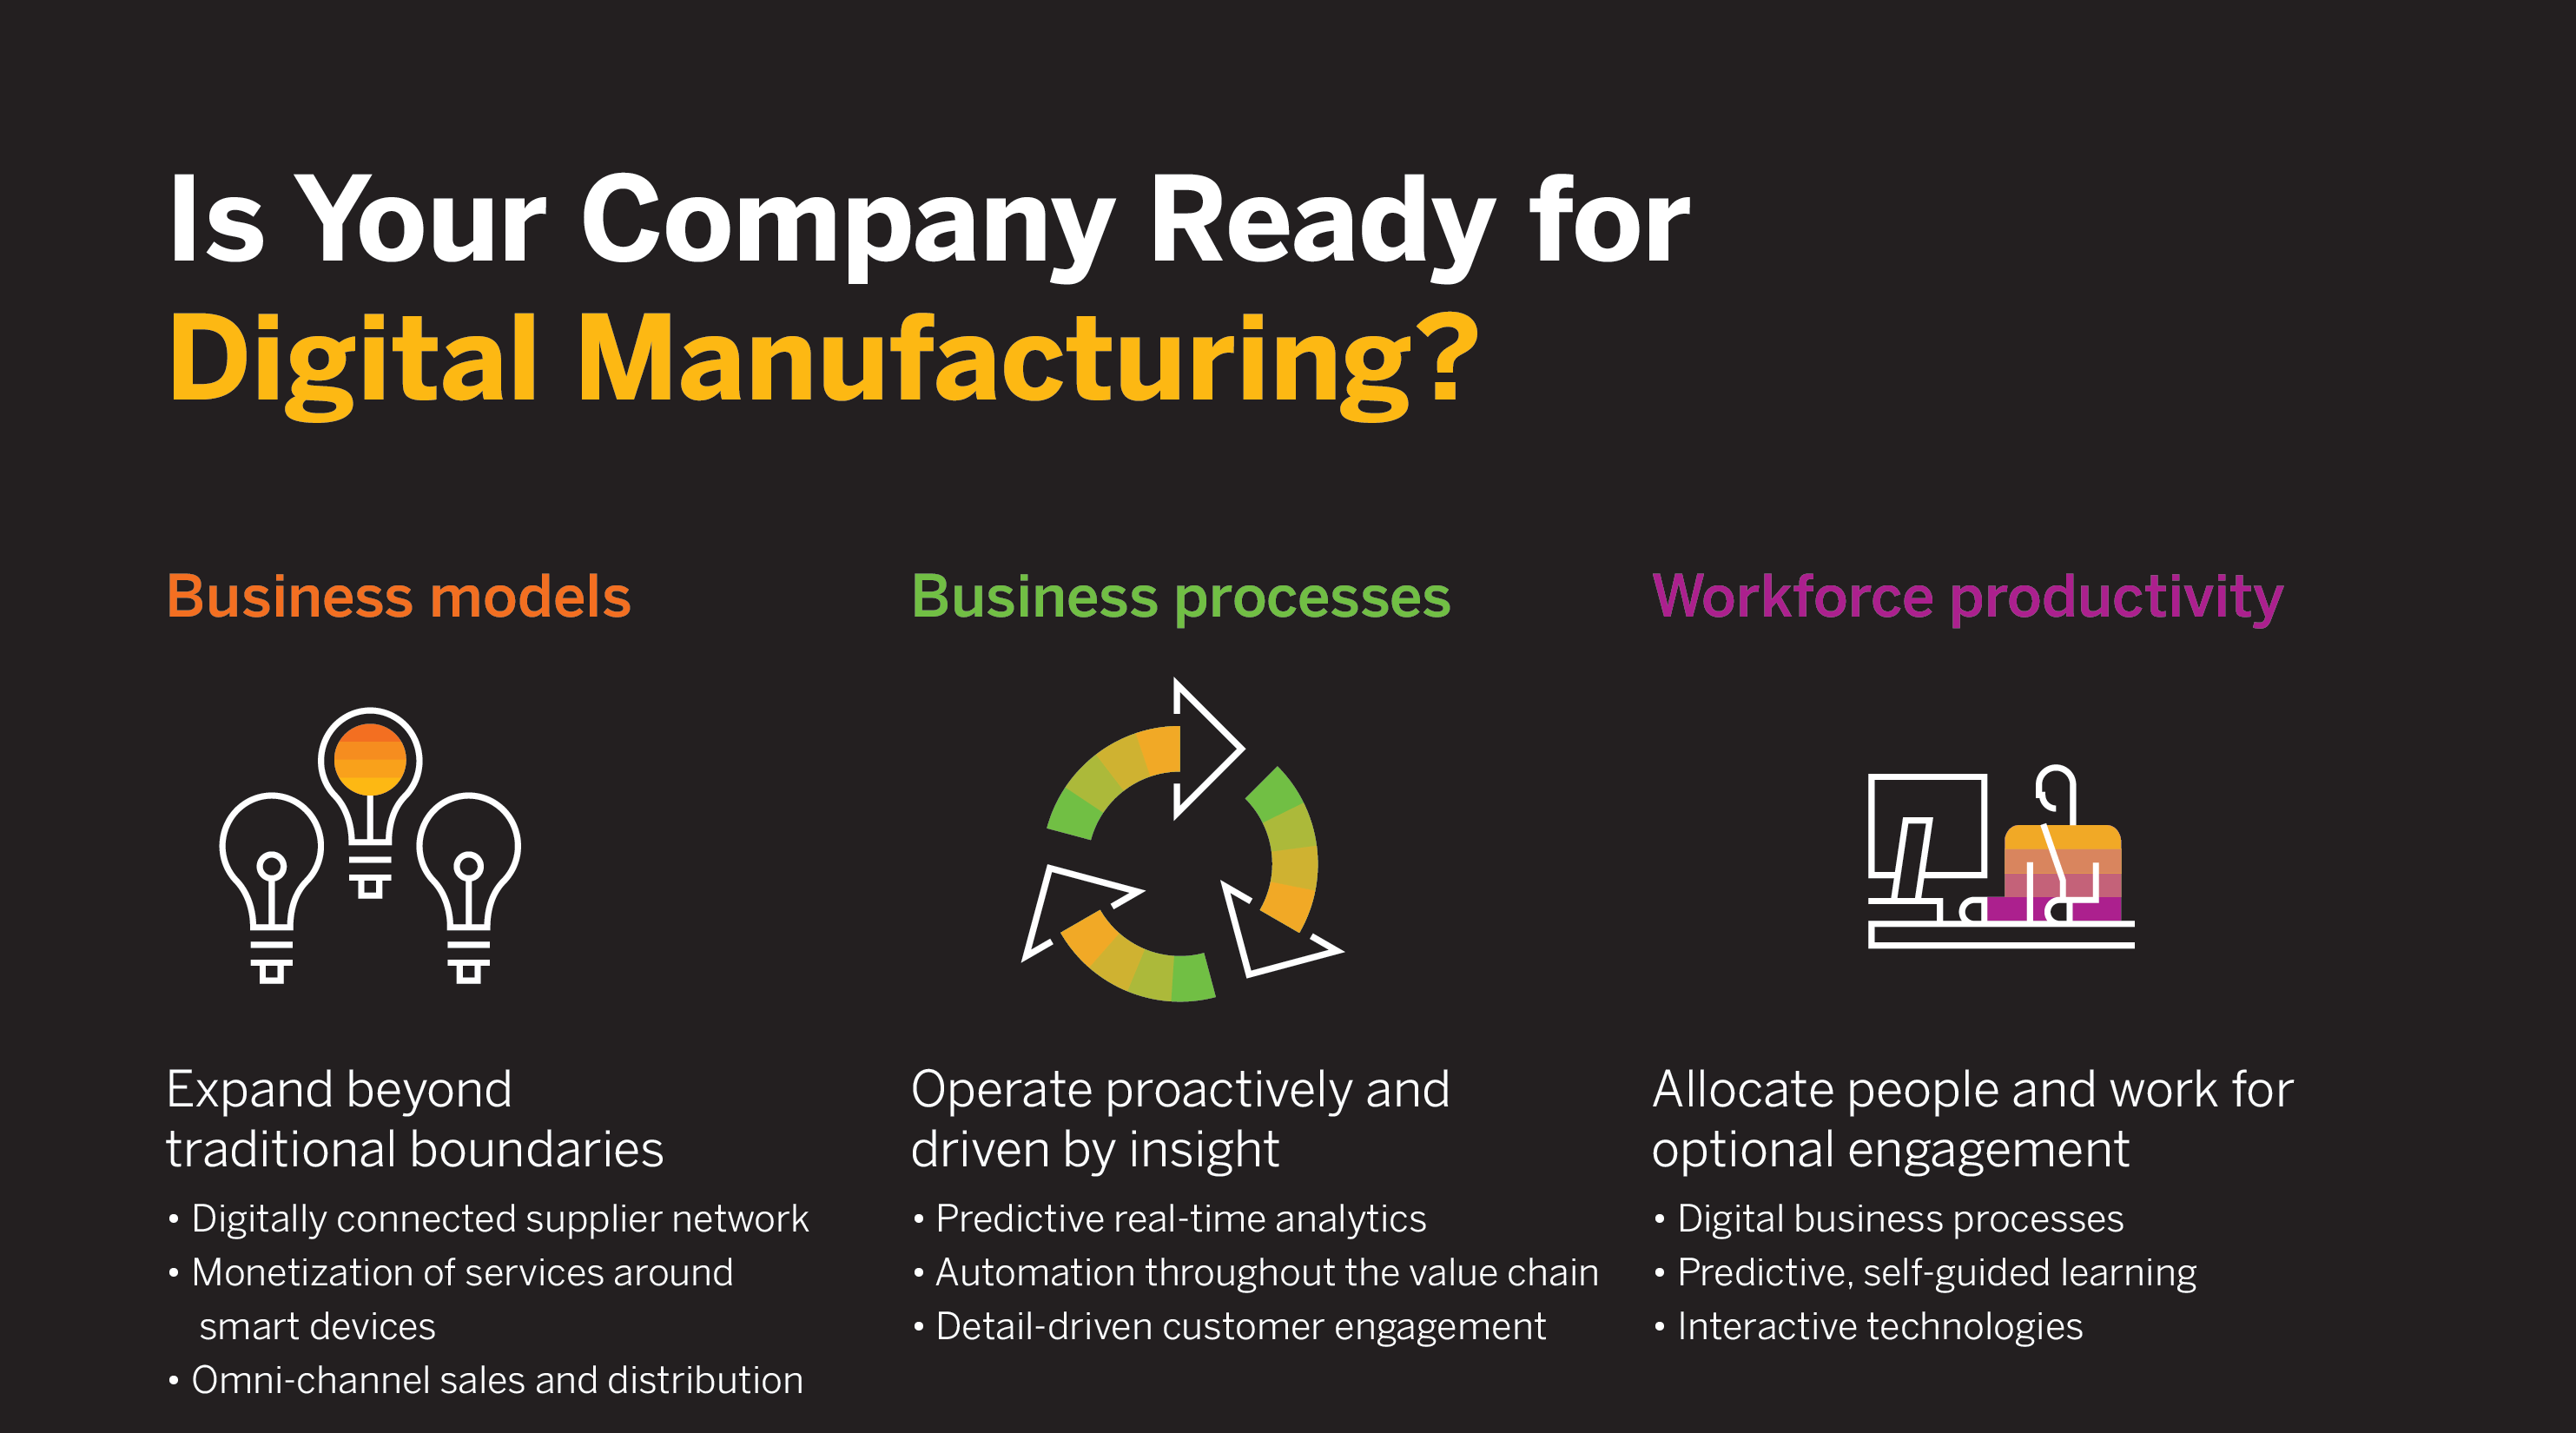 SAP B1-TOFU-Infographic-Are-You-Ready-for-Digital-Manufacturing